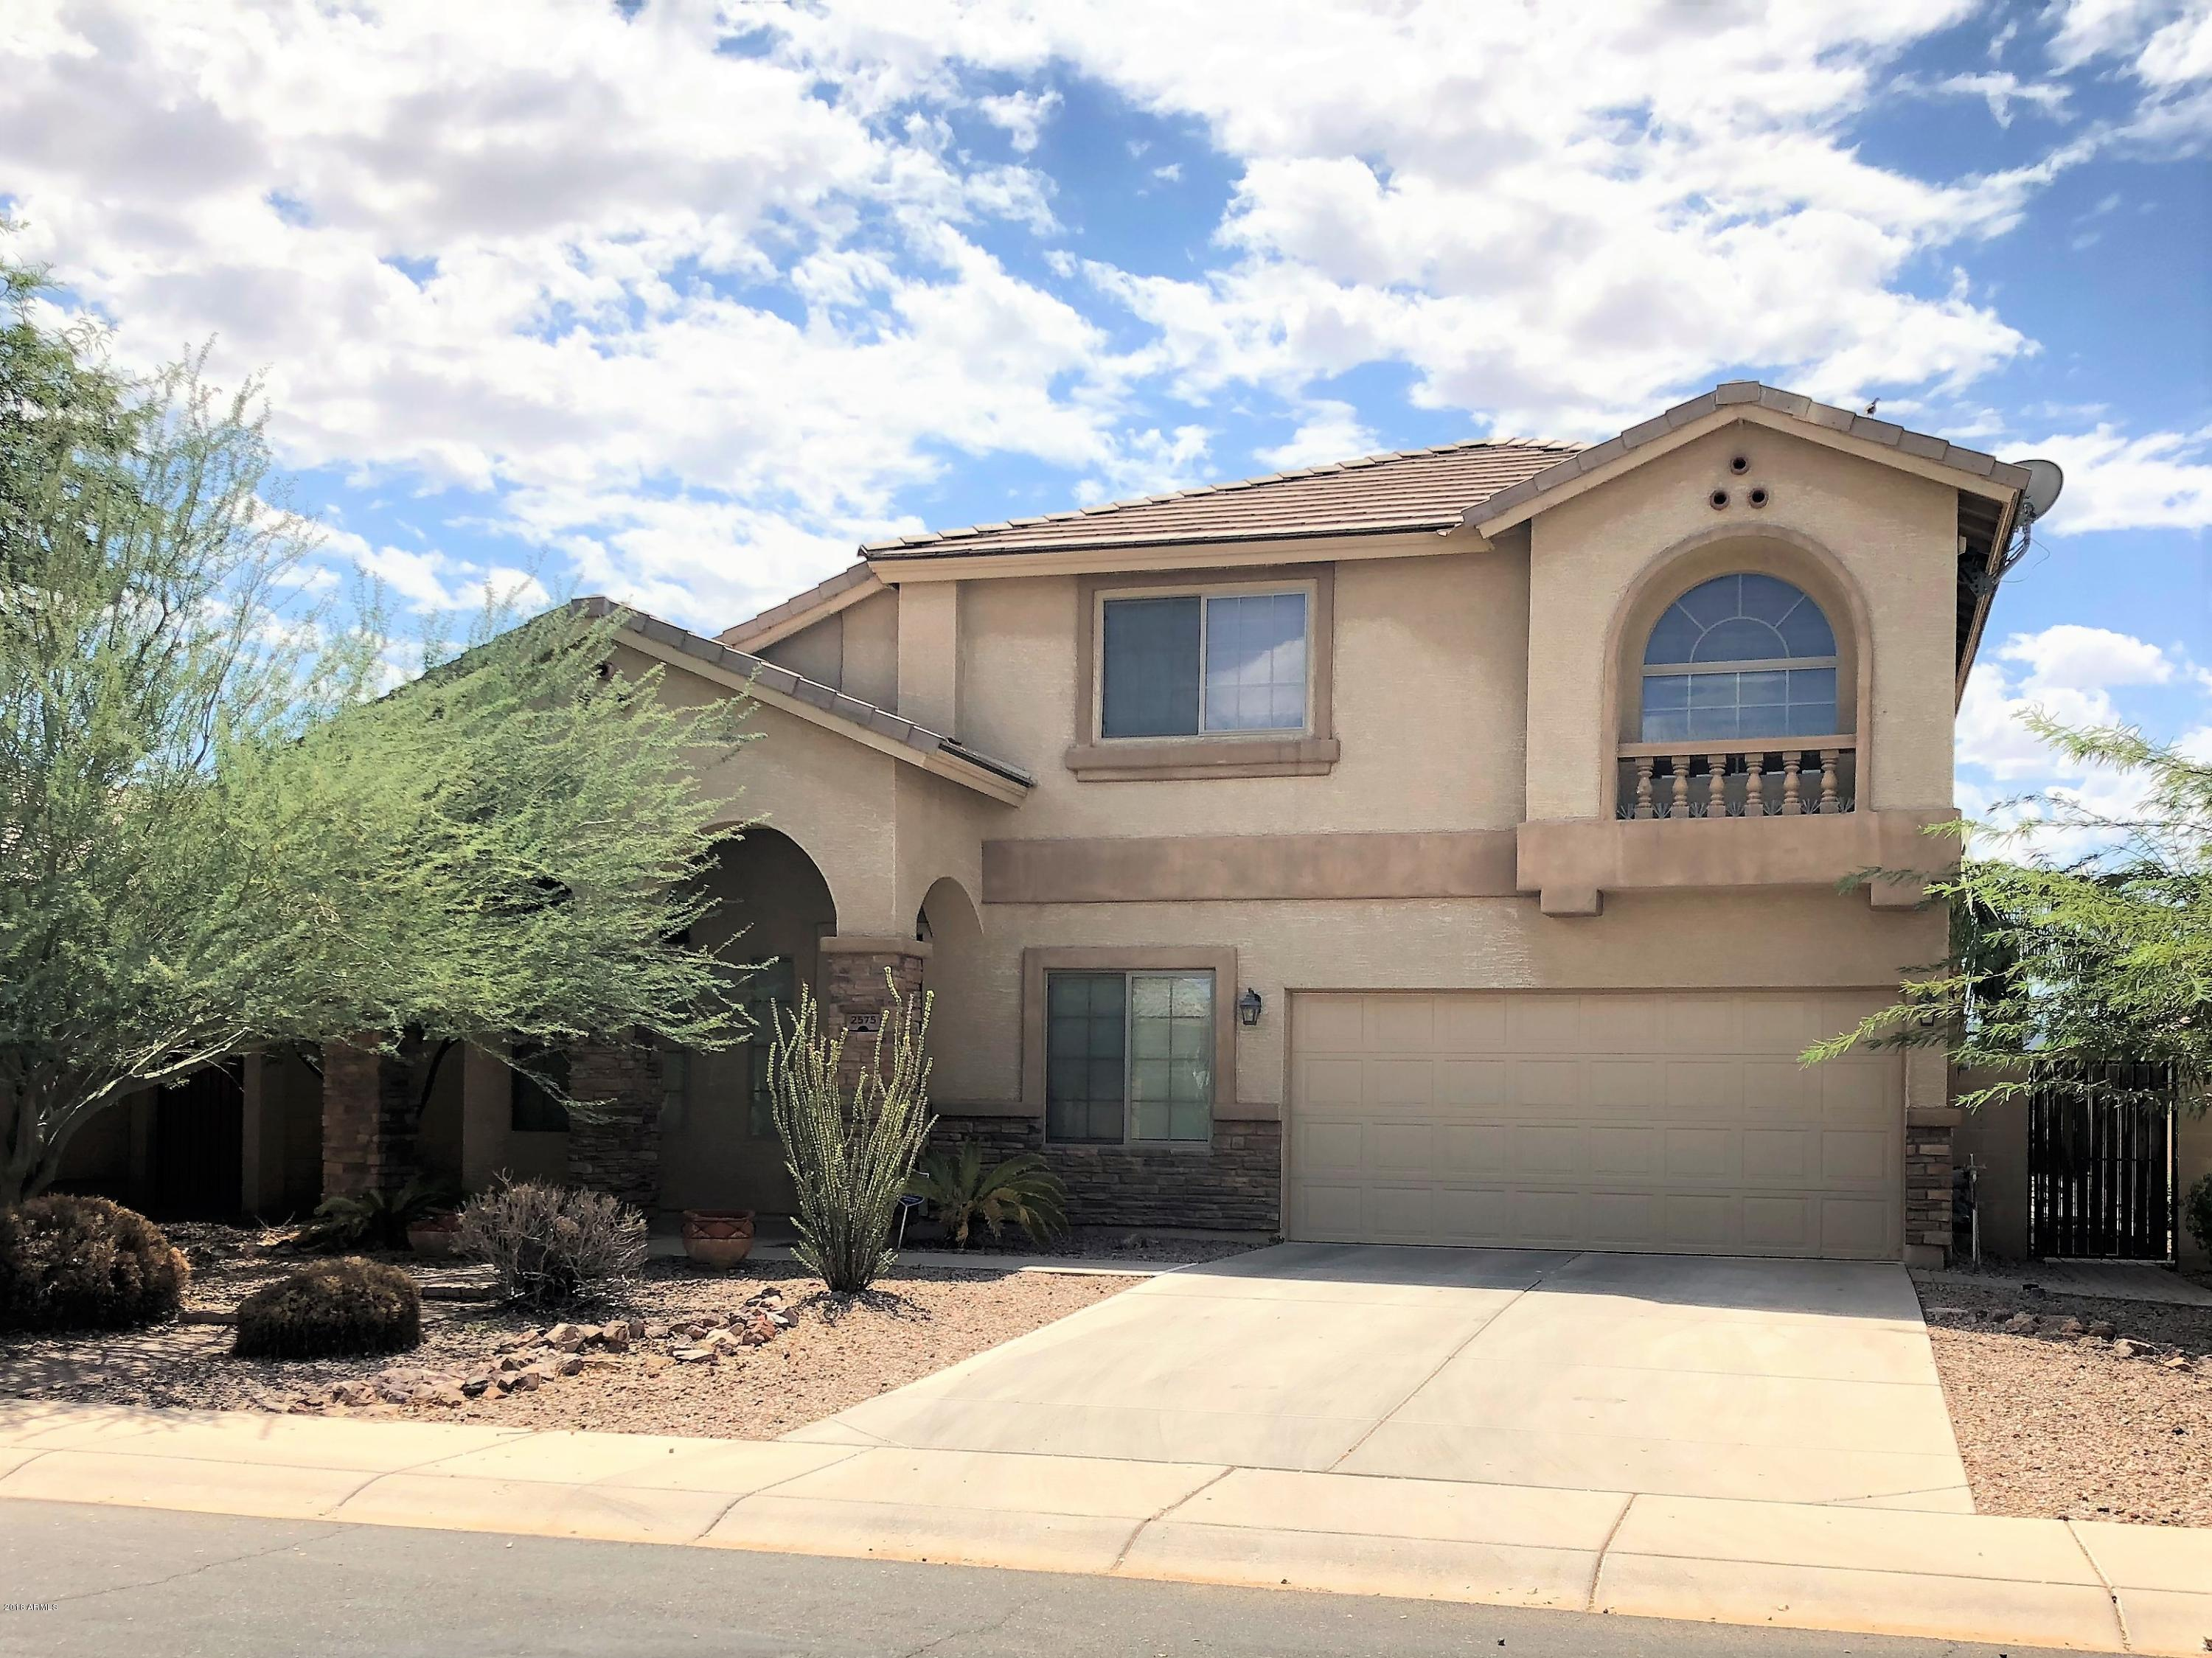 Photo for 2575 E San Isido Trail, Casa Grande, AZ 85194 (MLS # 5821794)